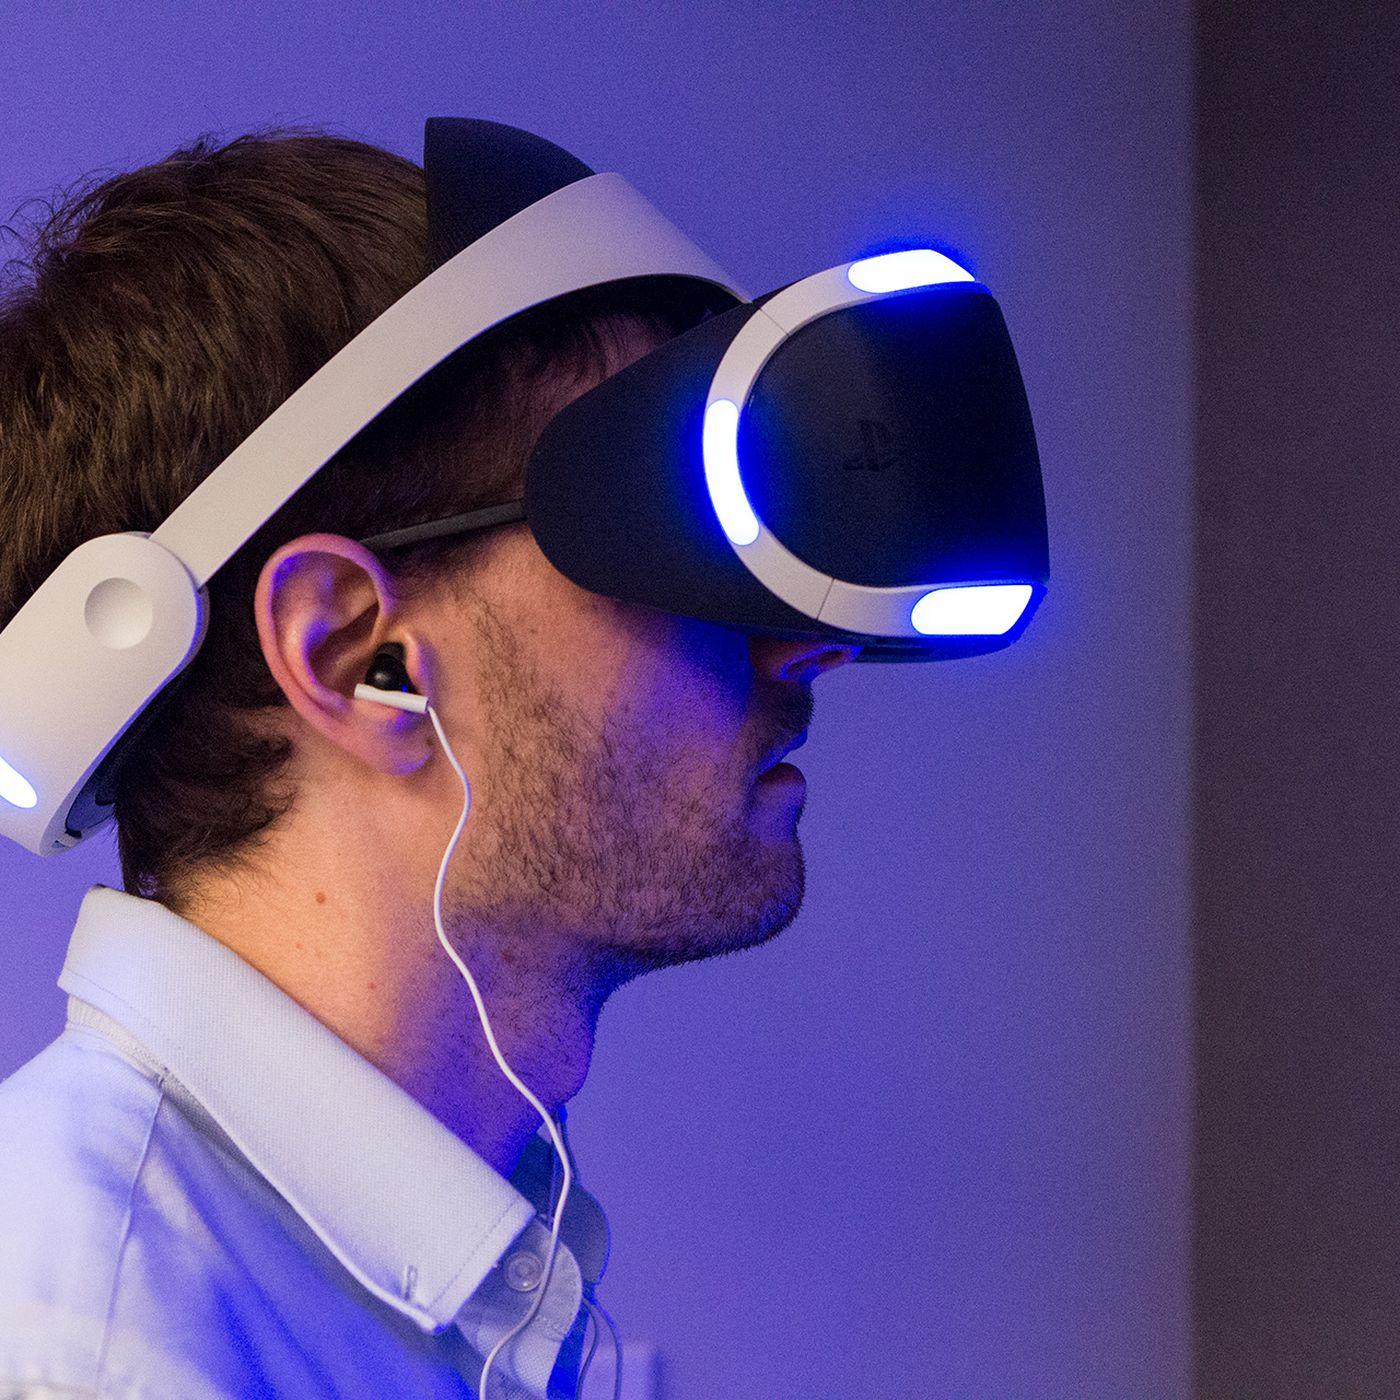 Playstation Vr Gets Another Hefty Price Cut Polygon